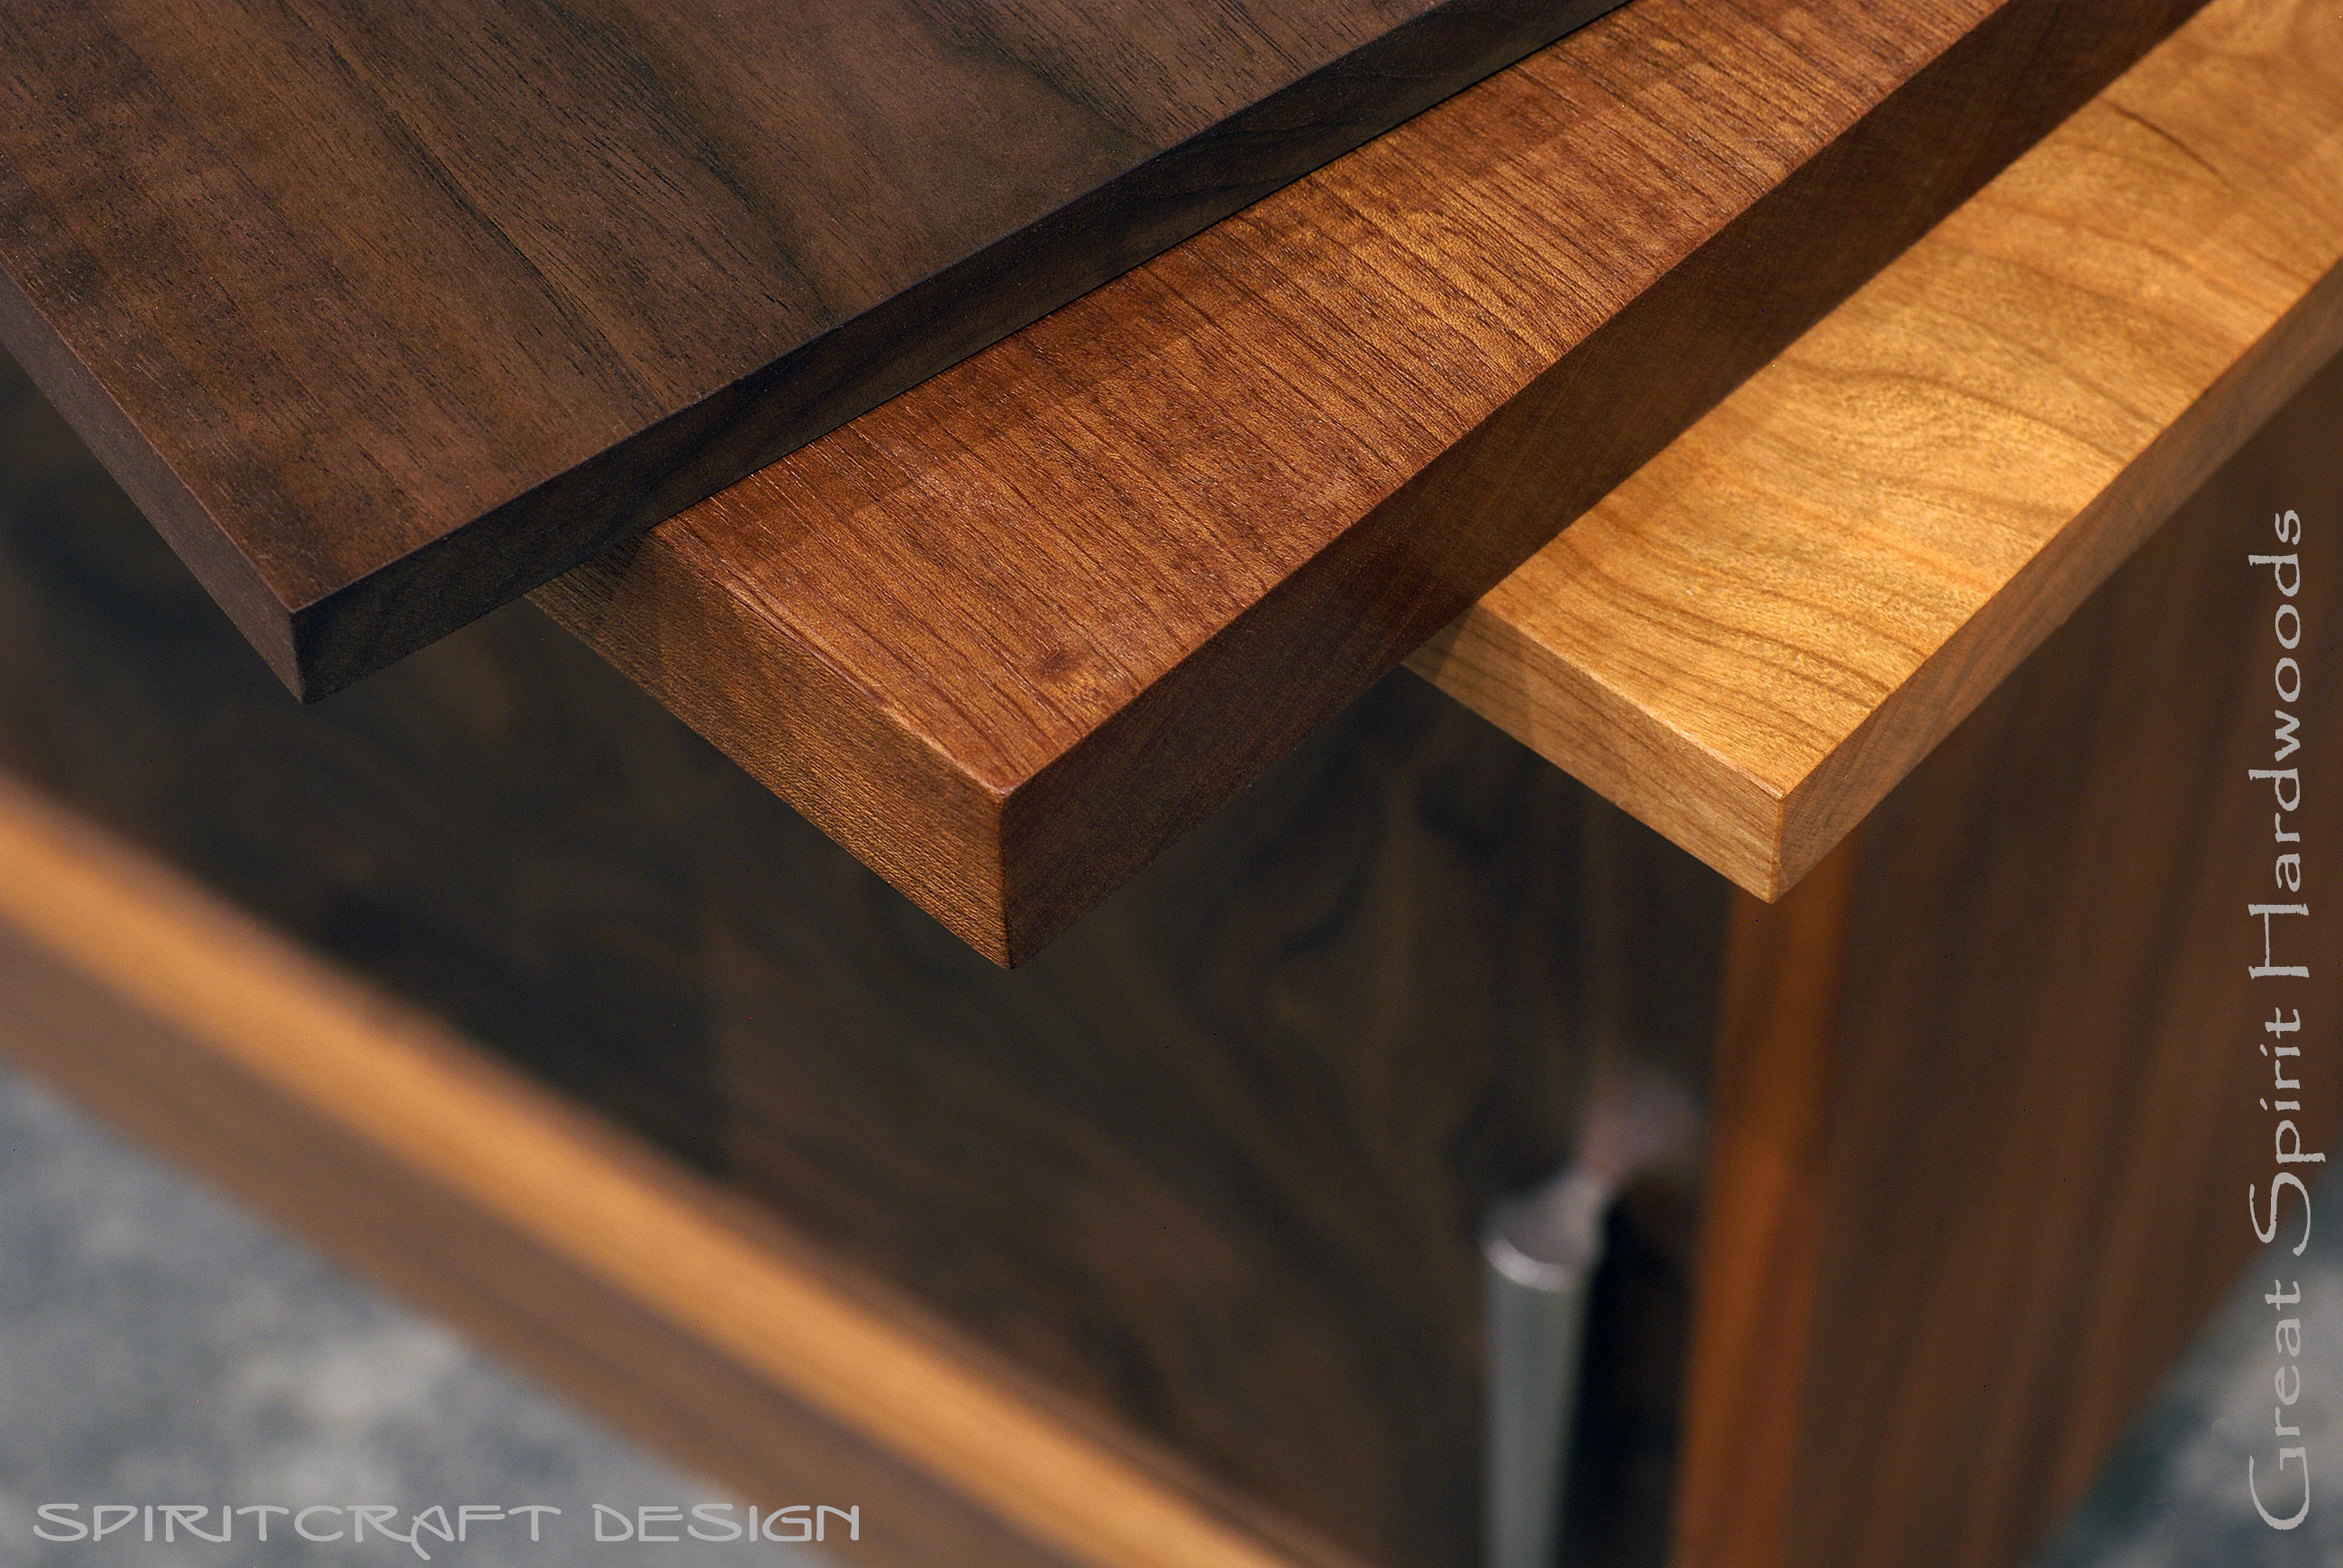 Custom Made Solid Hardwood Table Tops For DIY Clients, Restaurant, Office,  Library And